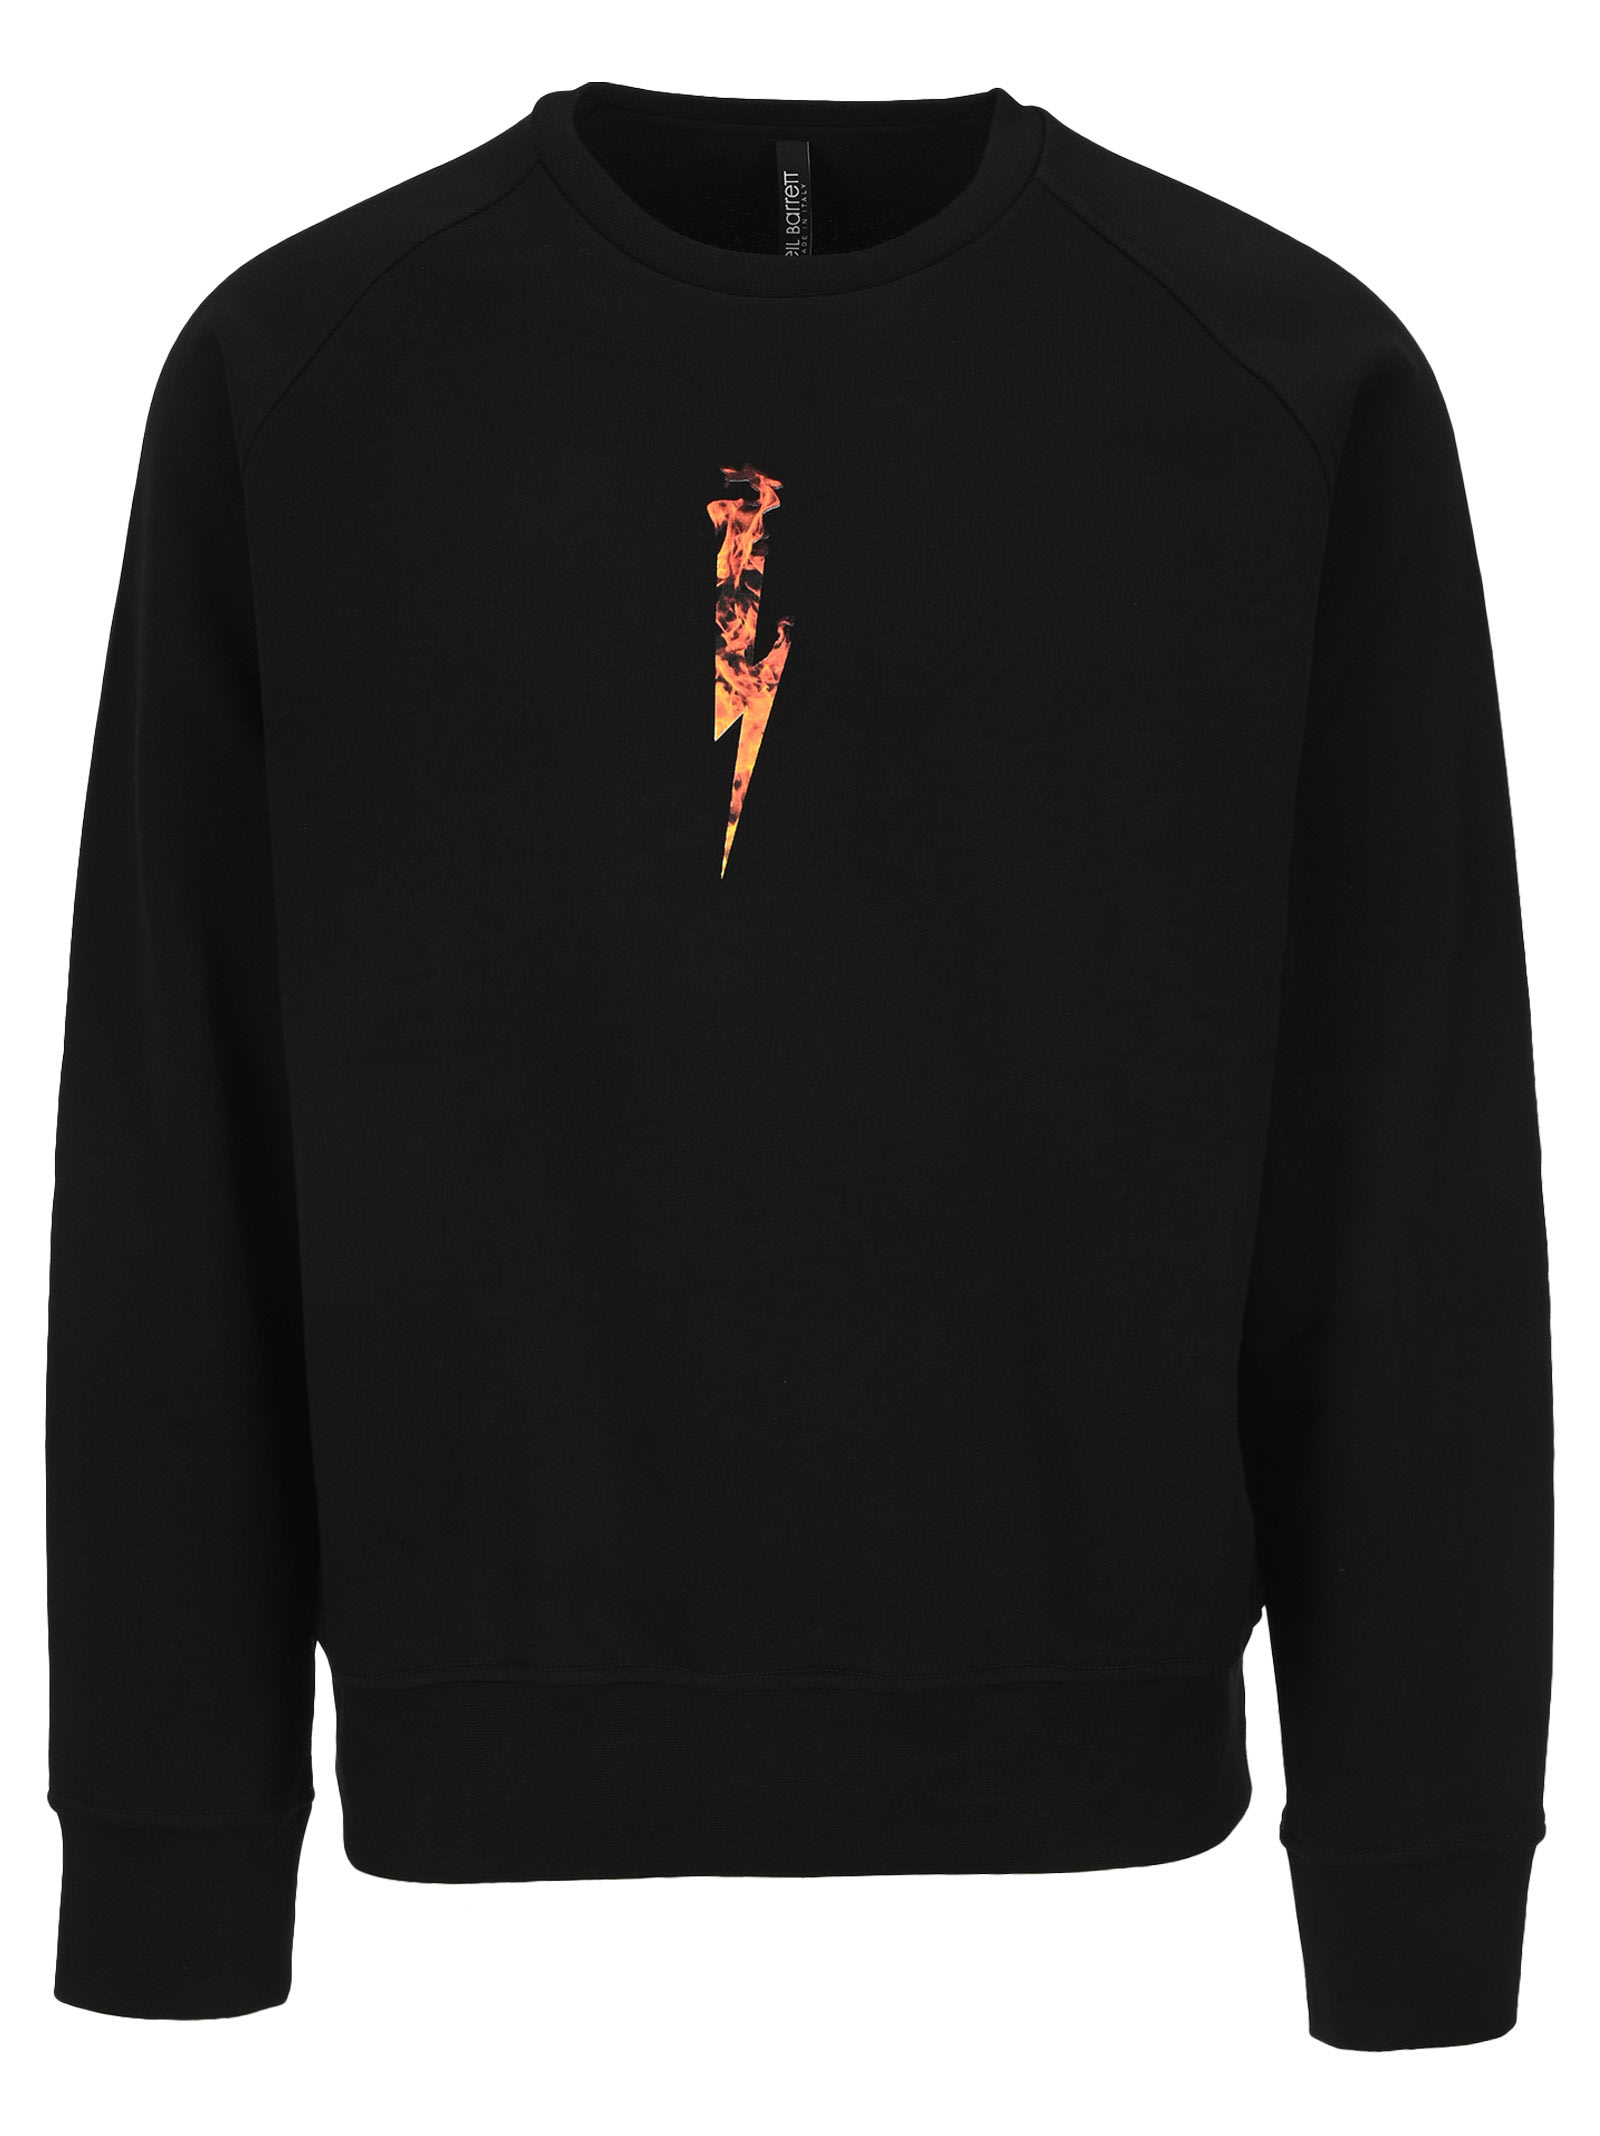 Neil Barrett Fire Thunderbolt Sweatshirt